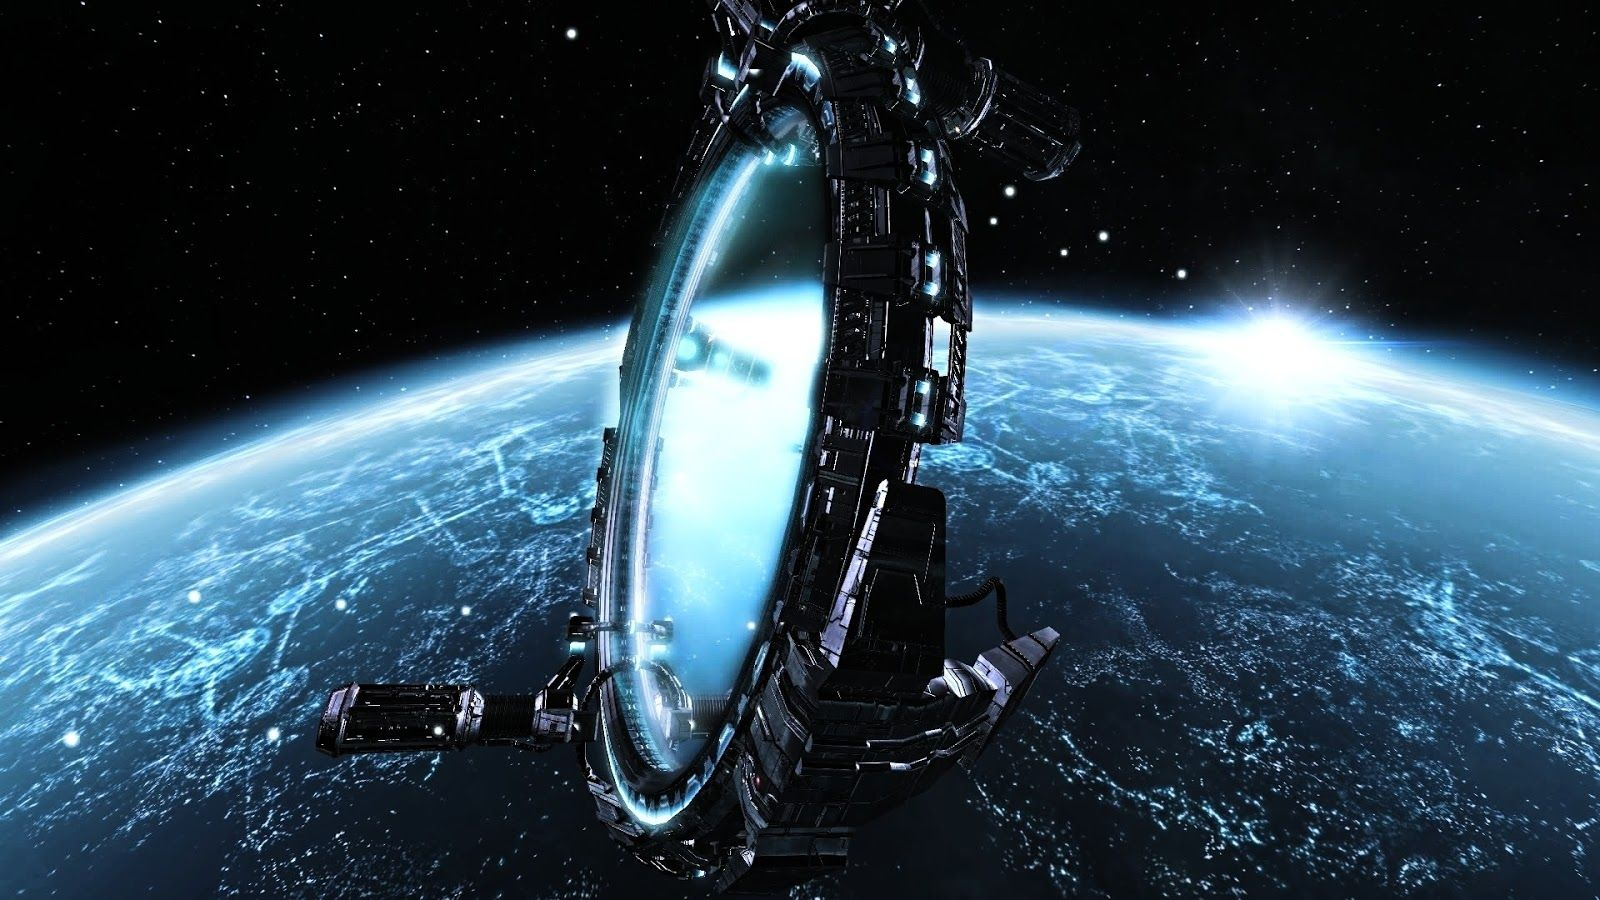 Images of Outer Space Stargate Science - #SC